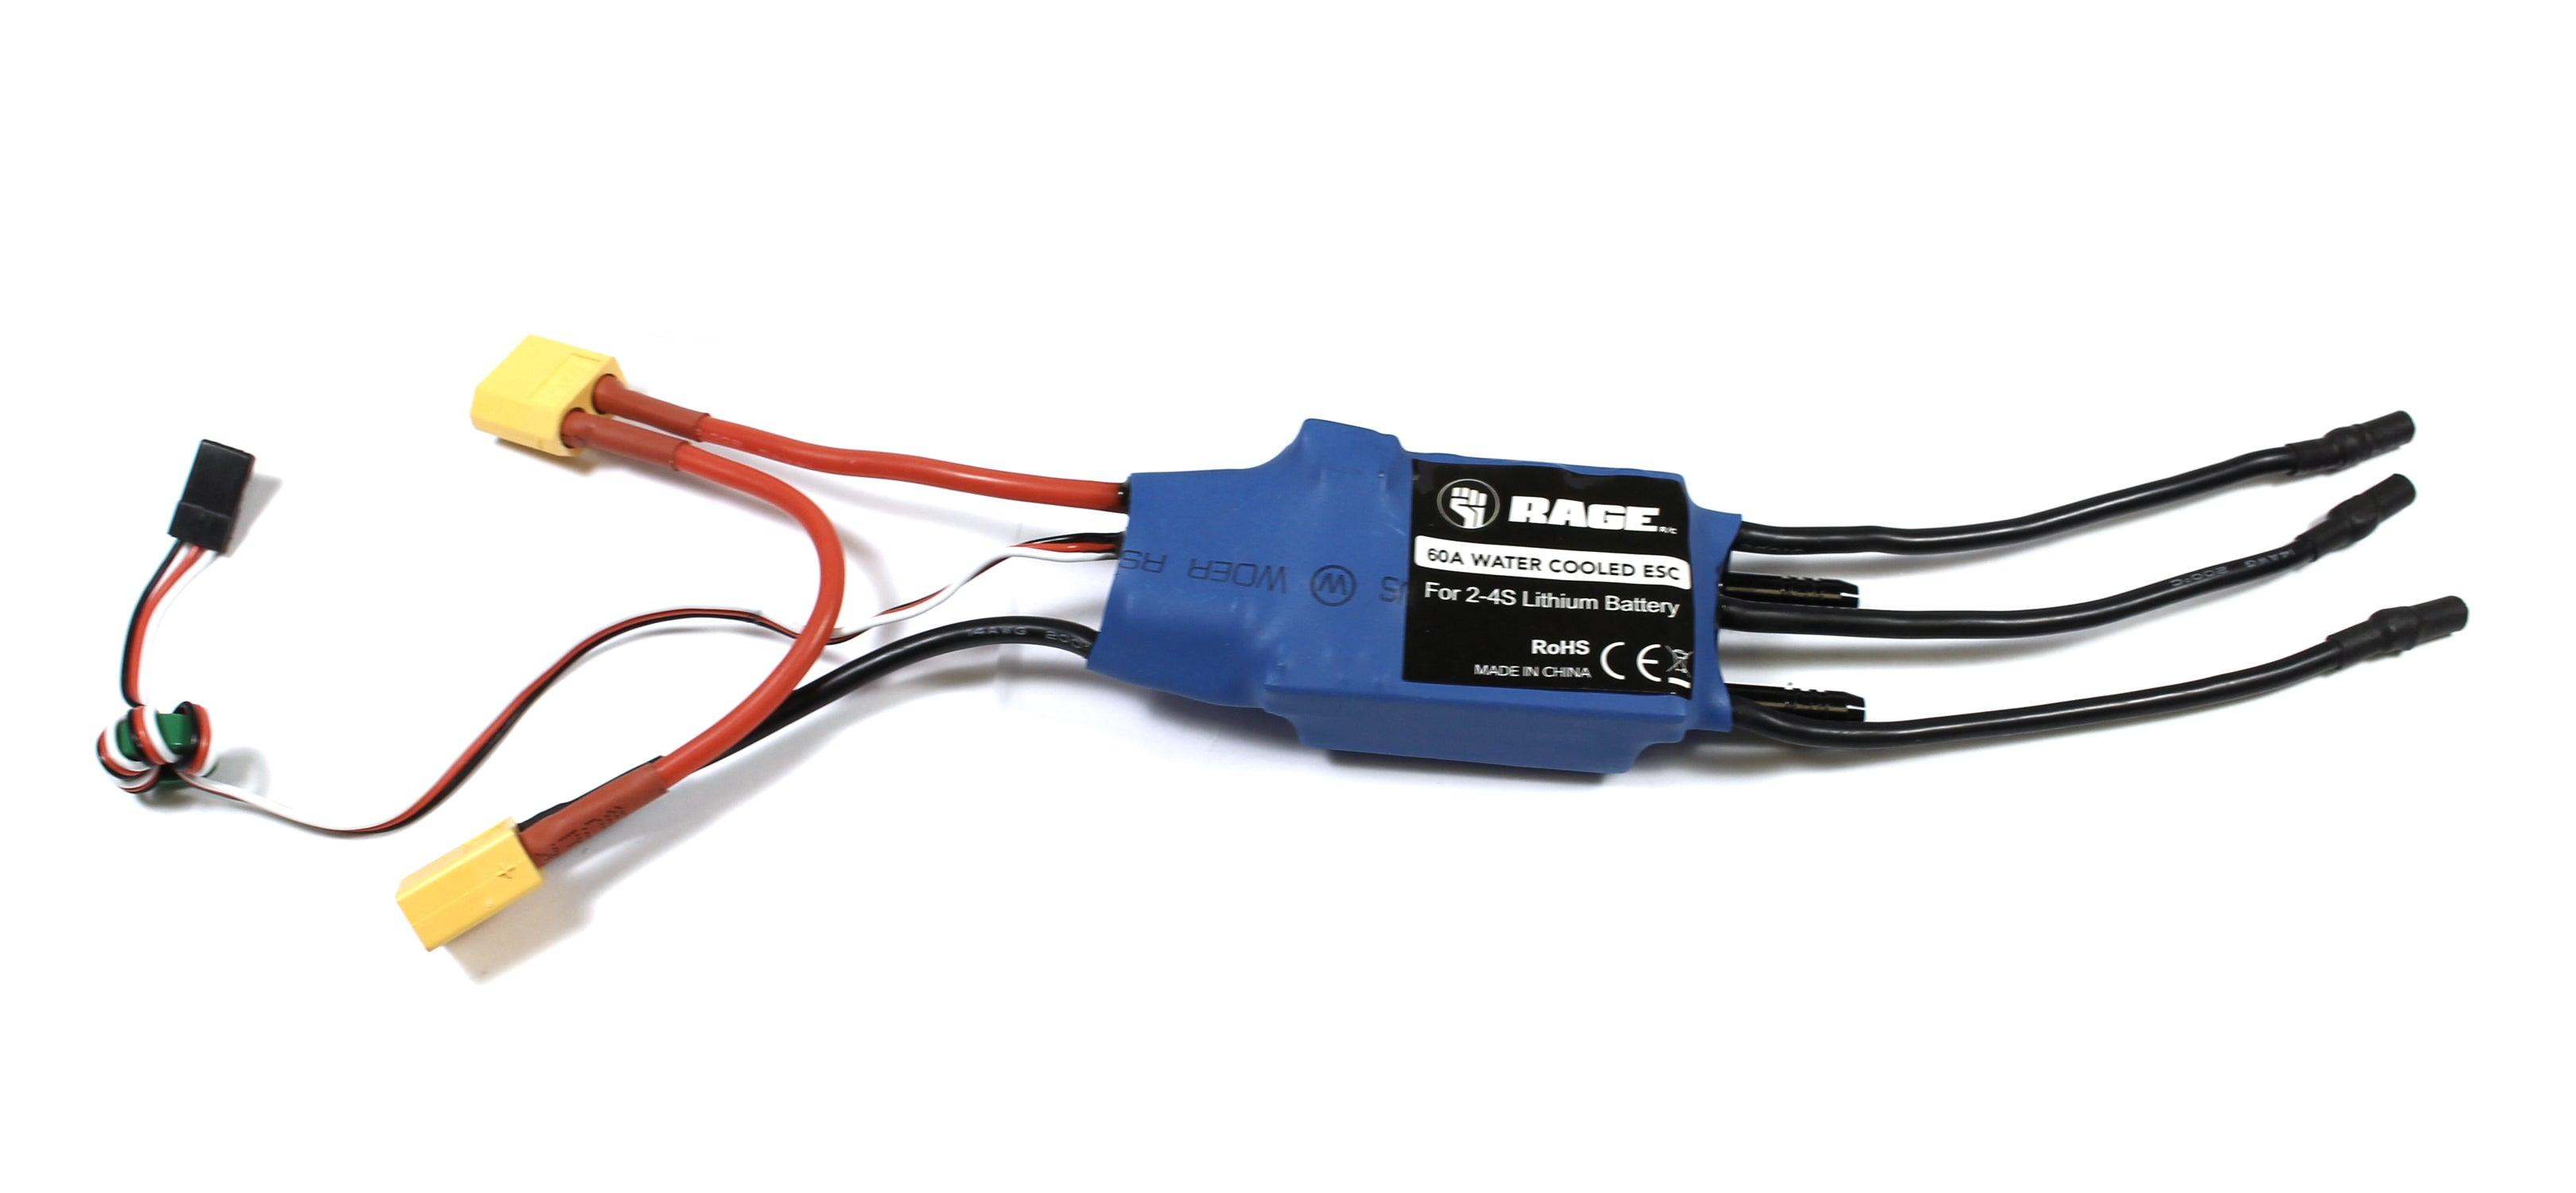 60a Brushless Esc Water Cooled Velocity 800 Hobby Recreation Wiring Rgrb1267